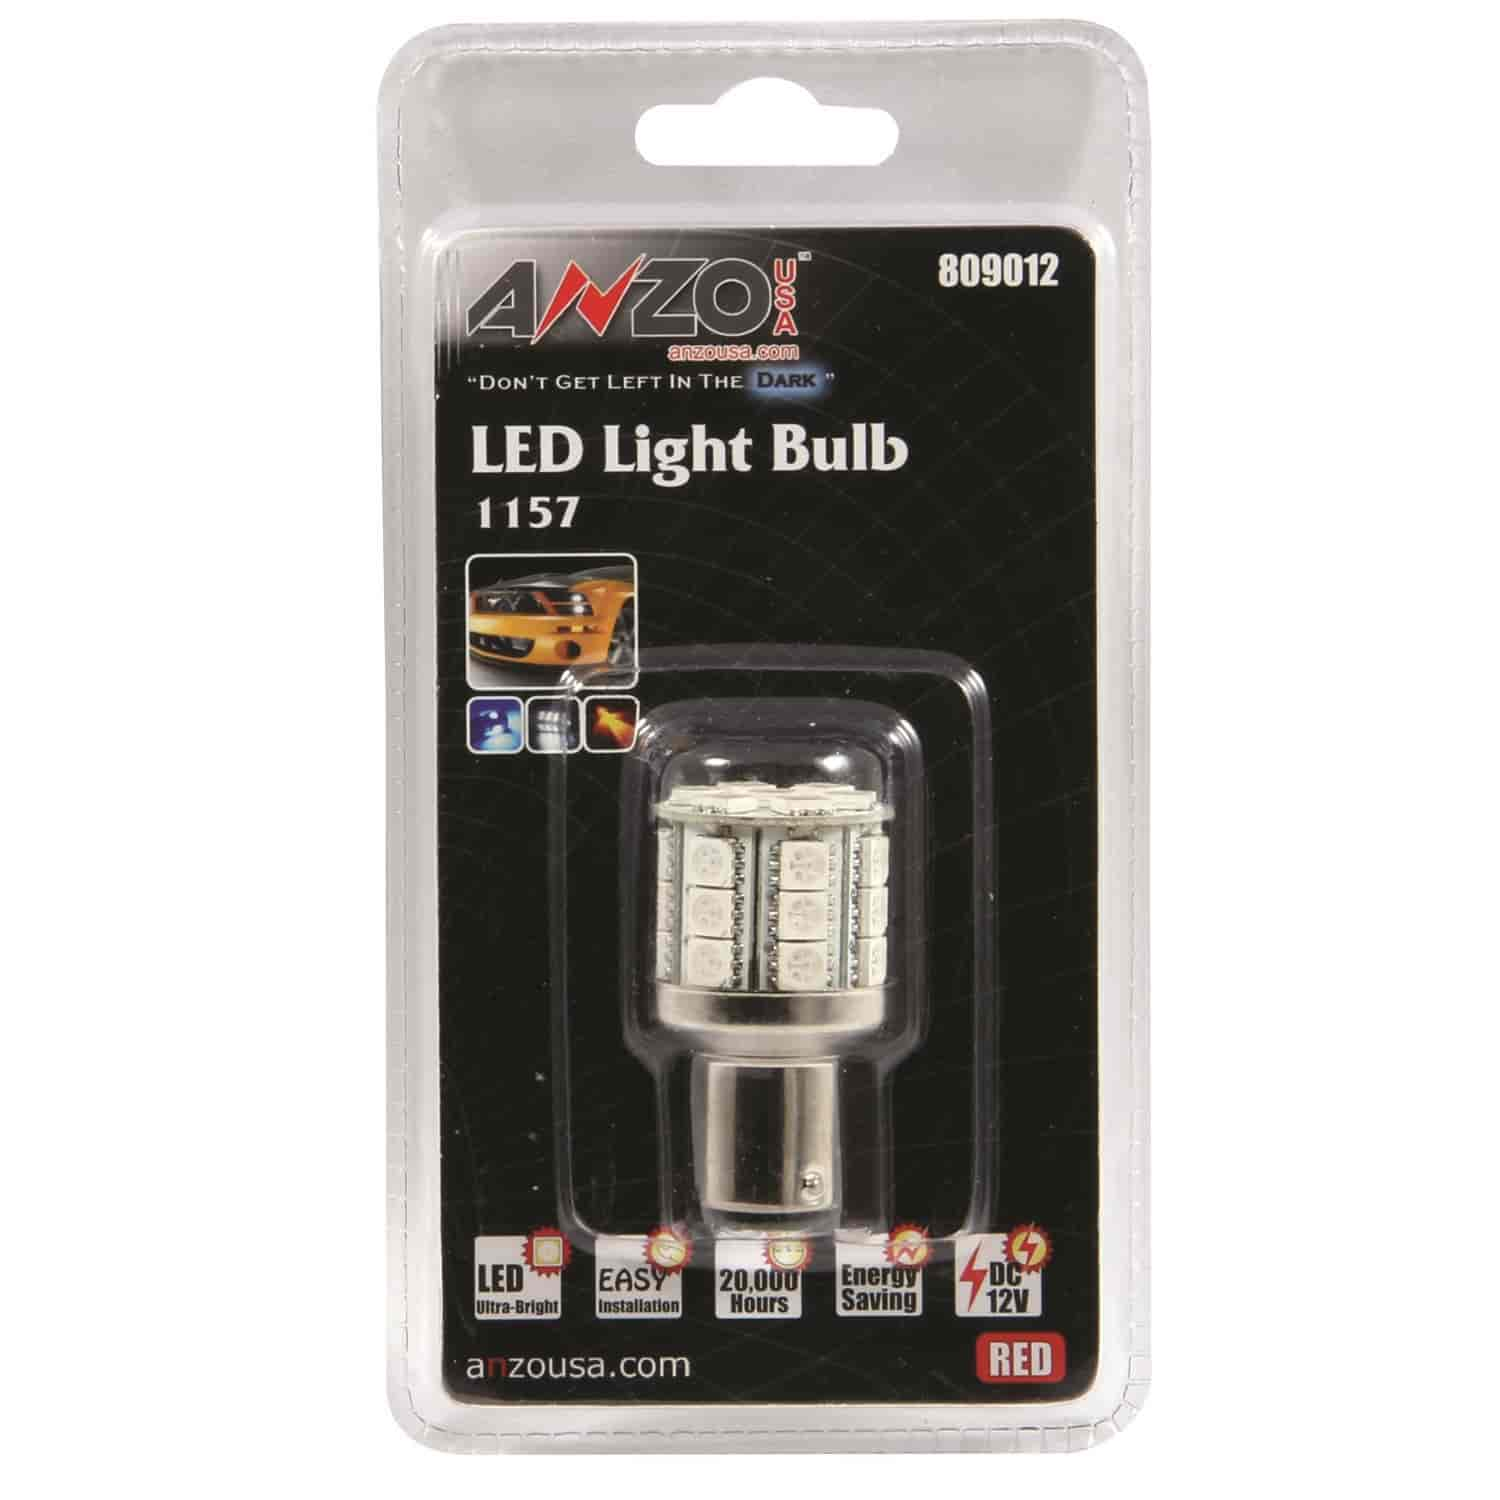 Anzo 809012 - Anzo LED Universal Light Bulbs